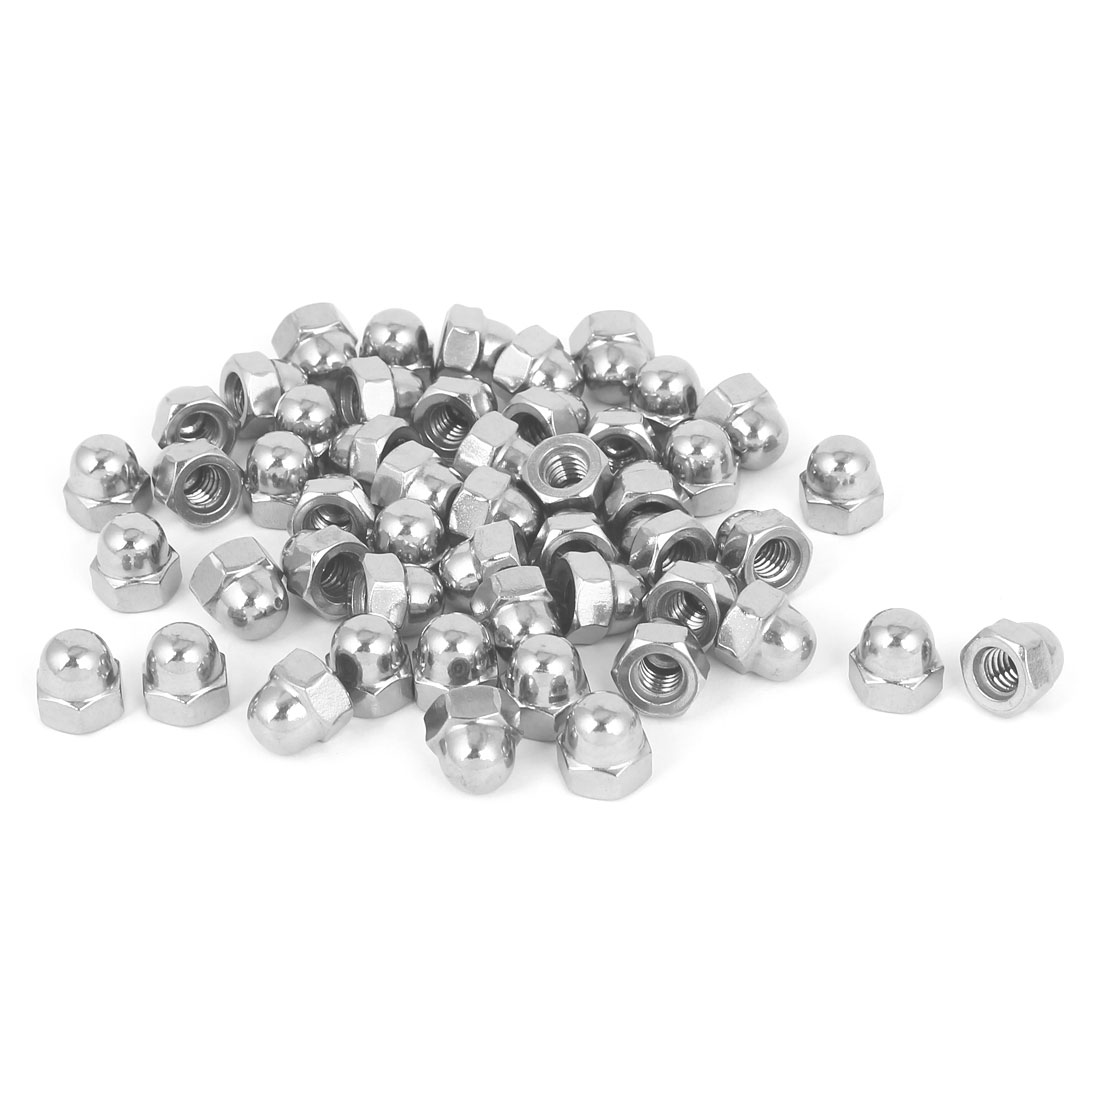 "1/4""-20 304 Stainless Steel Dome Head Cap Hexagon Nuts Silver Tone 50pcs"